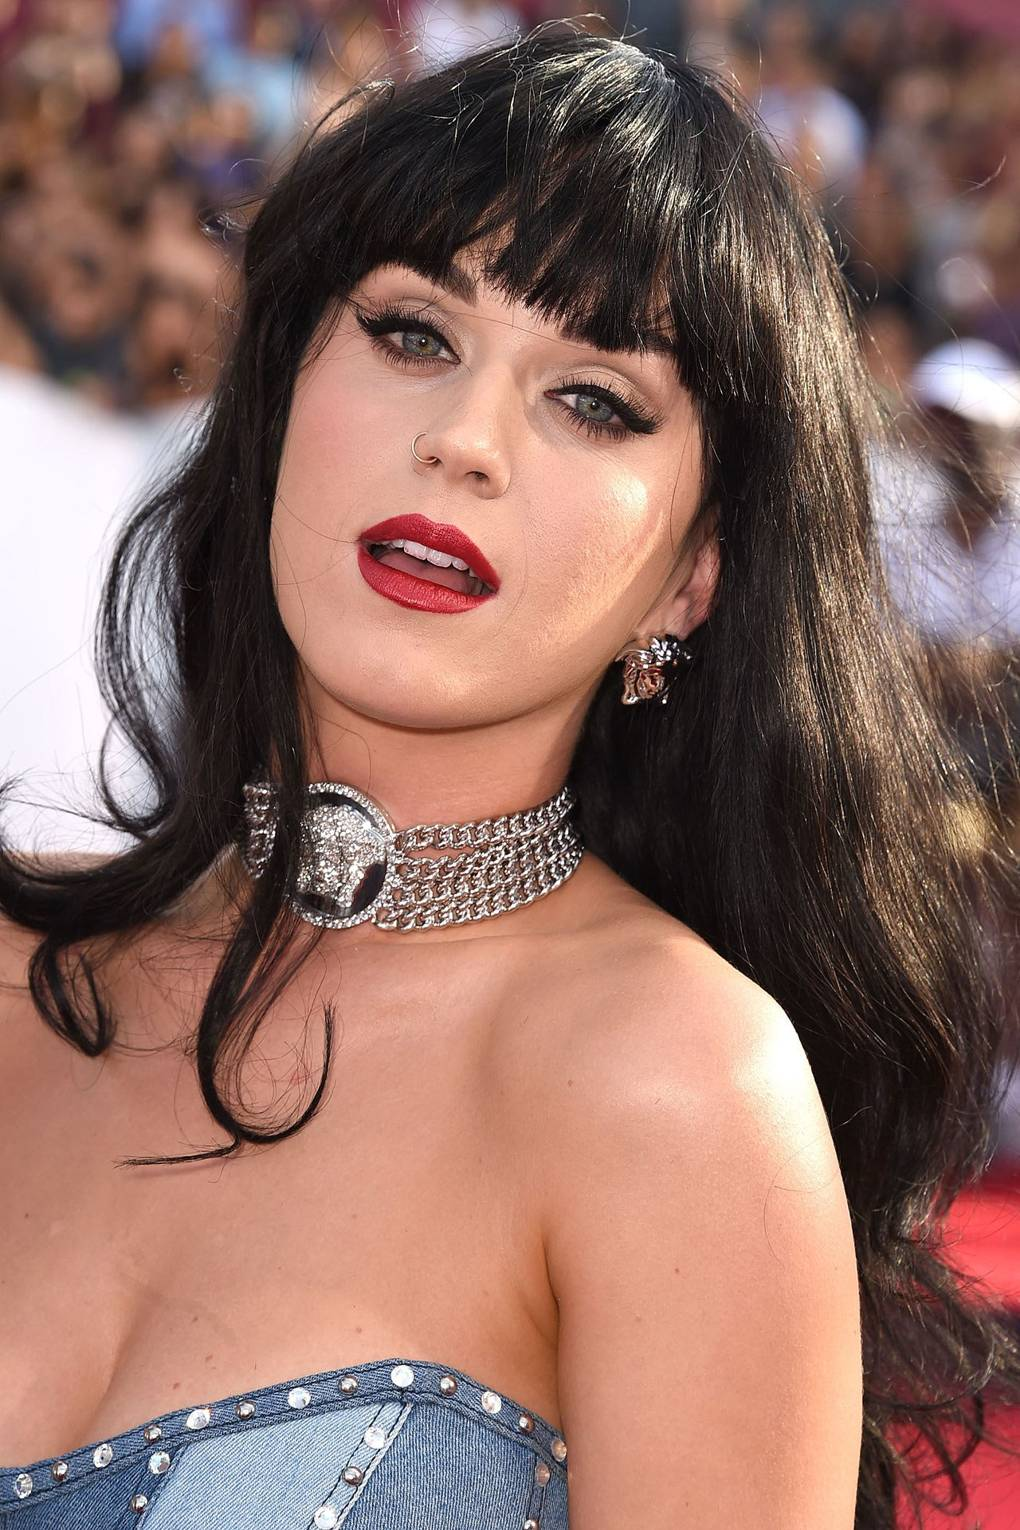 Katy Perry Tattoo Photos Of Her Hello Kitty Finger Tattoo Glamour Uk